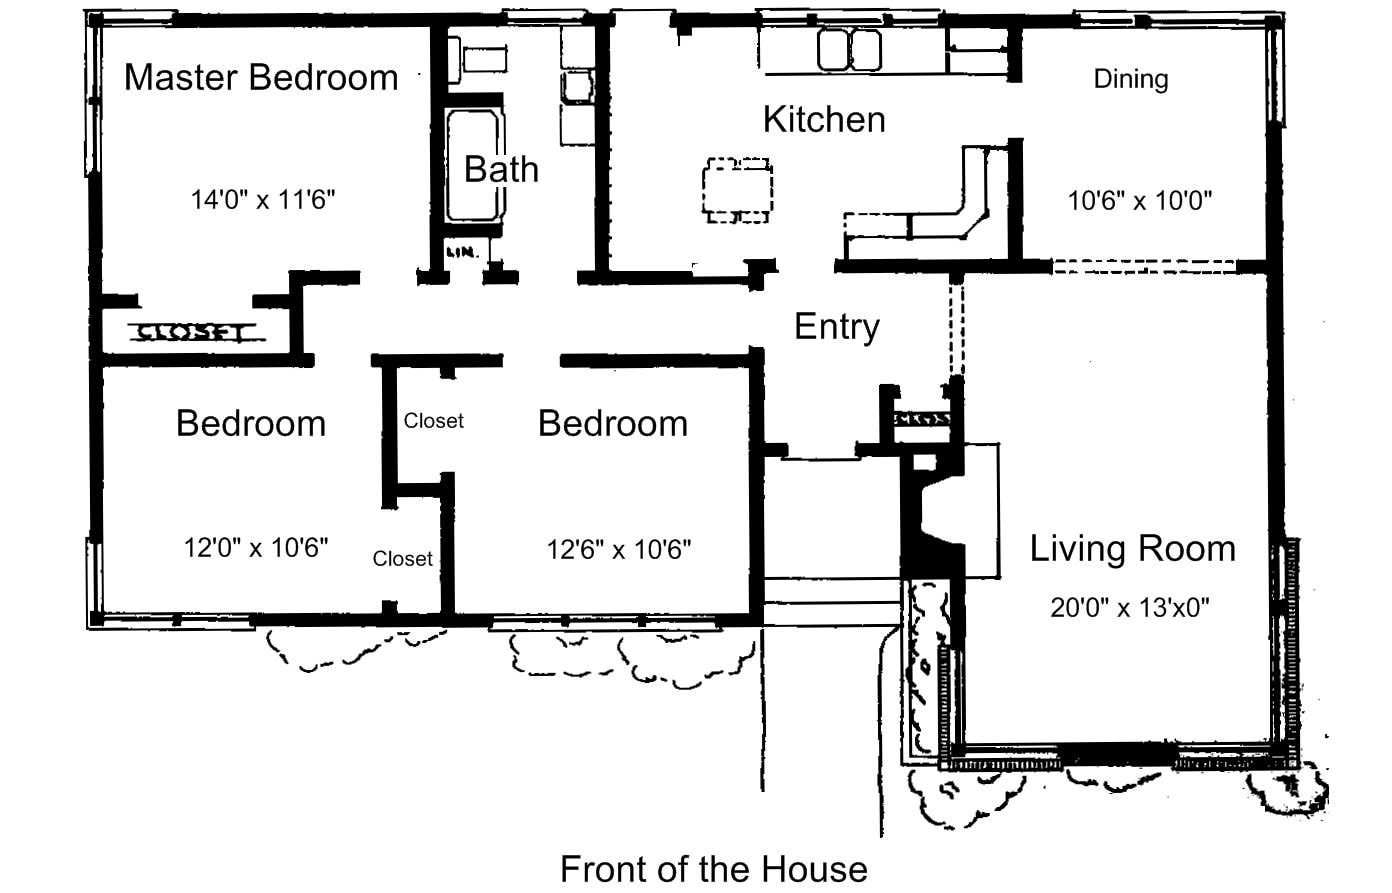 1000 images about house plans on pinterest small house plans floor plans and house plans